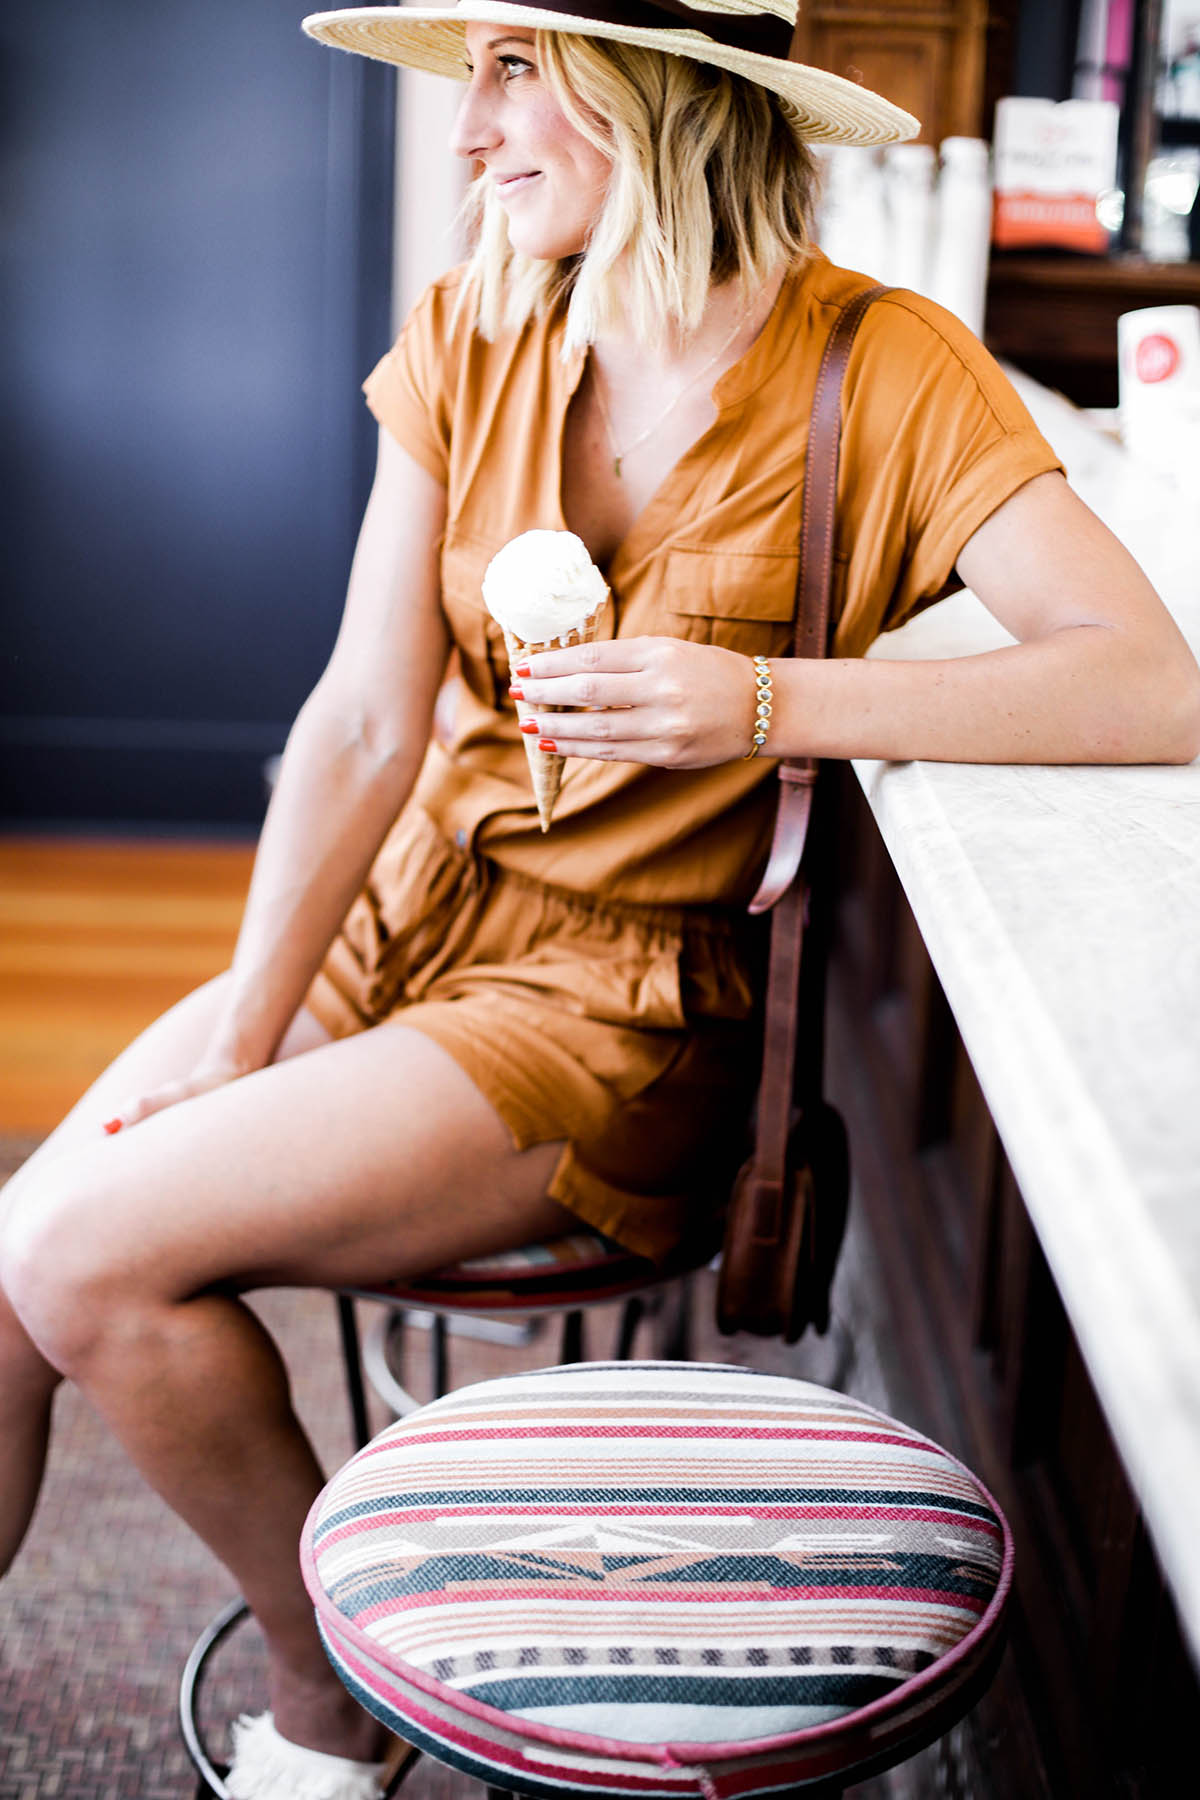 Amanda Holstein in Old Navy romper and woven fedora hat at Nimble & Finn's ice cream